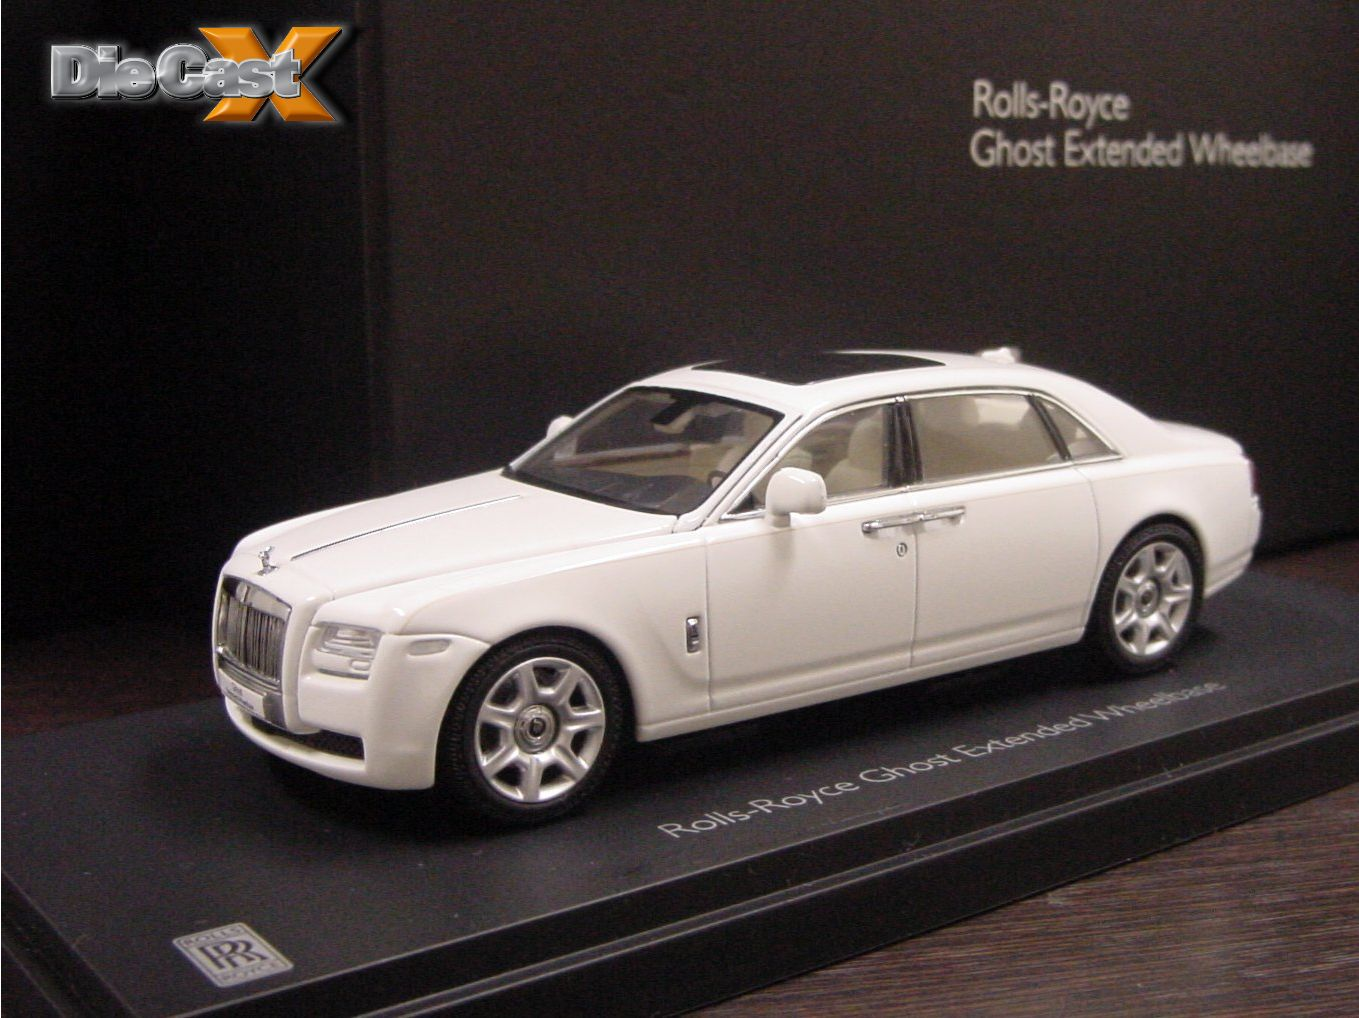 Ghost Hunting: Kyosho Announces 1:43 Rolls-Royce Ghost Extended Wheelbase Cars